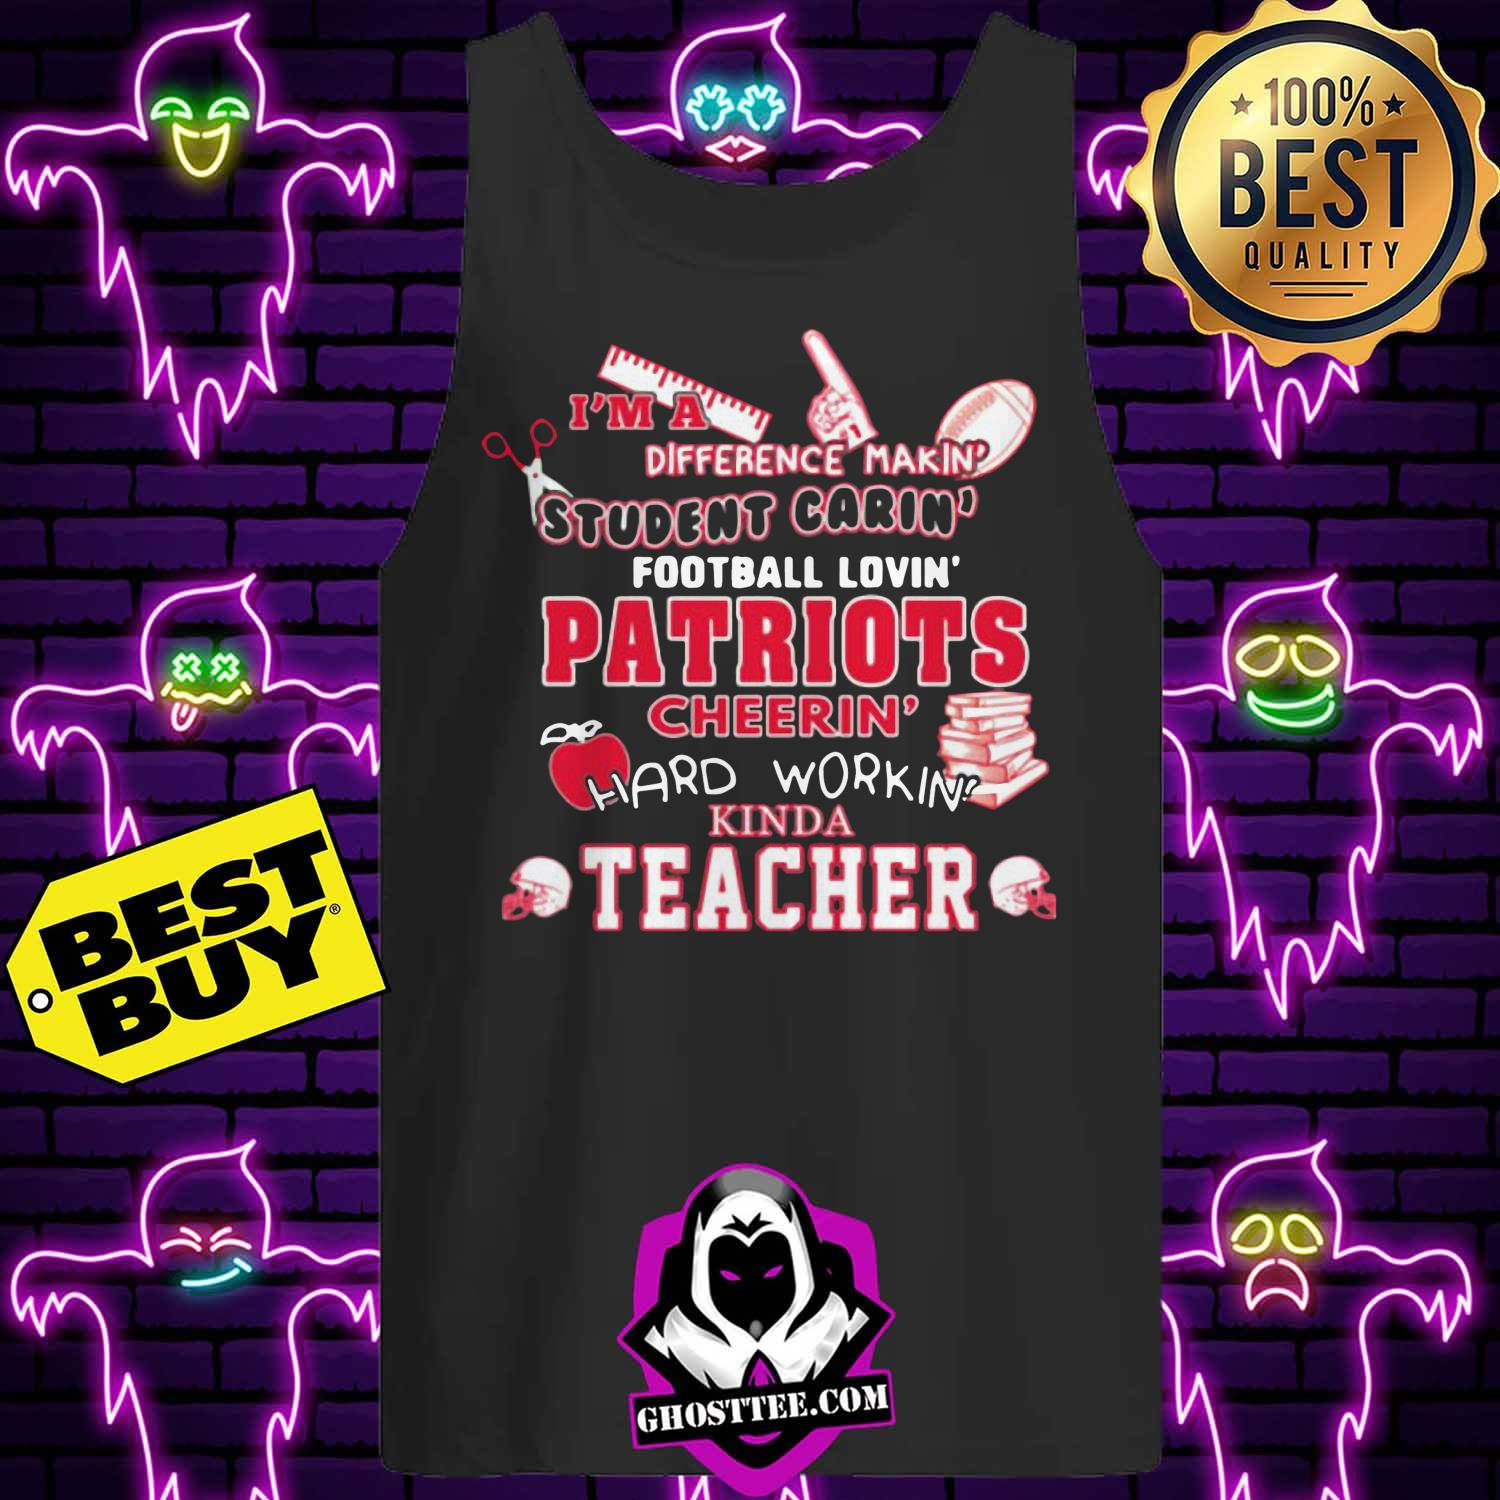 tennessee titans nfl im a difference making student caring football loving kinda teacher youth tank top 1 - Tennessee Titans NFL I'm A Difference Making Student Caring Football Loving Kinda Teacher Youth shirt